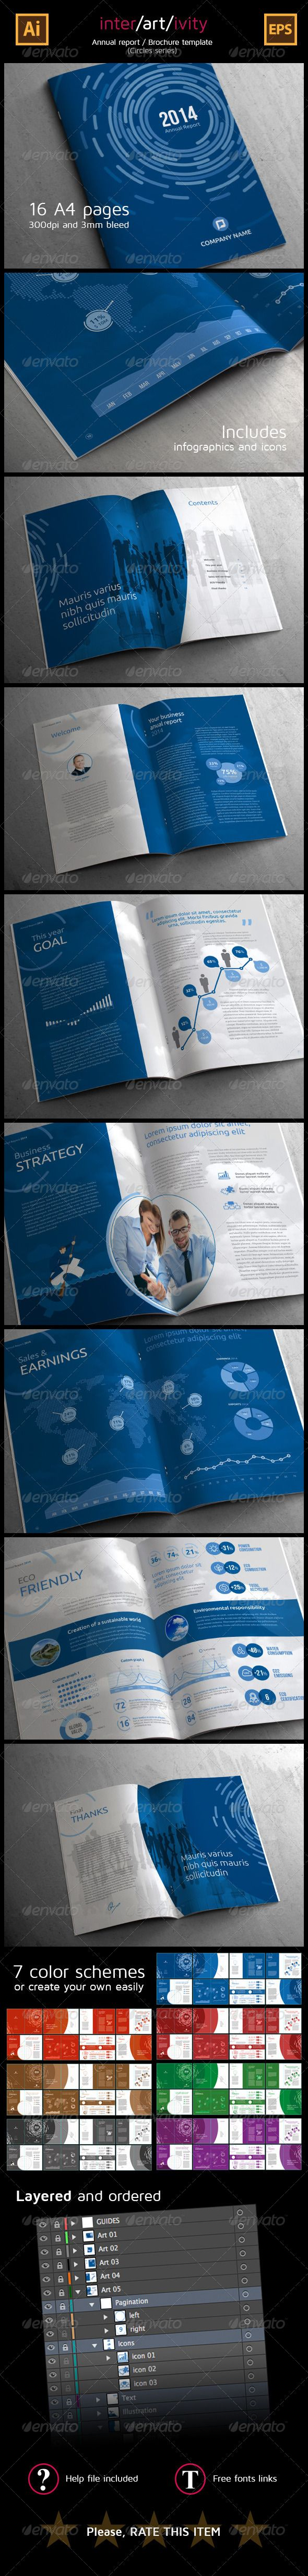 Corporate Annual Report (Circles Series) - Corporate Brochures